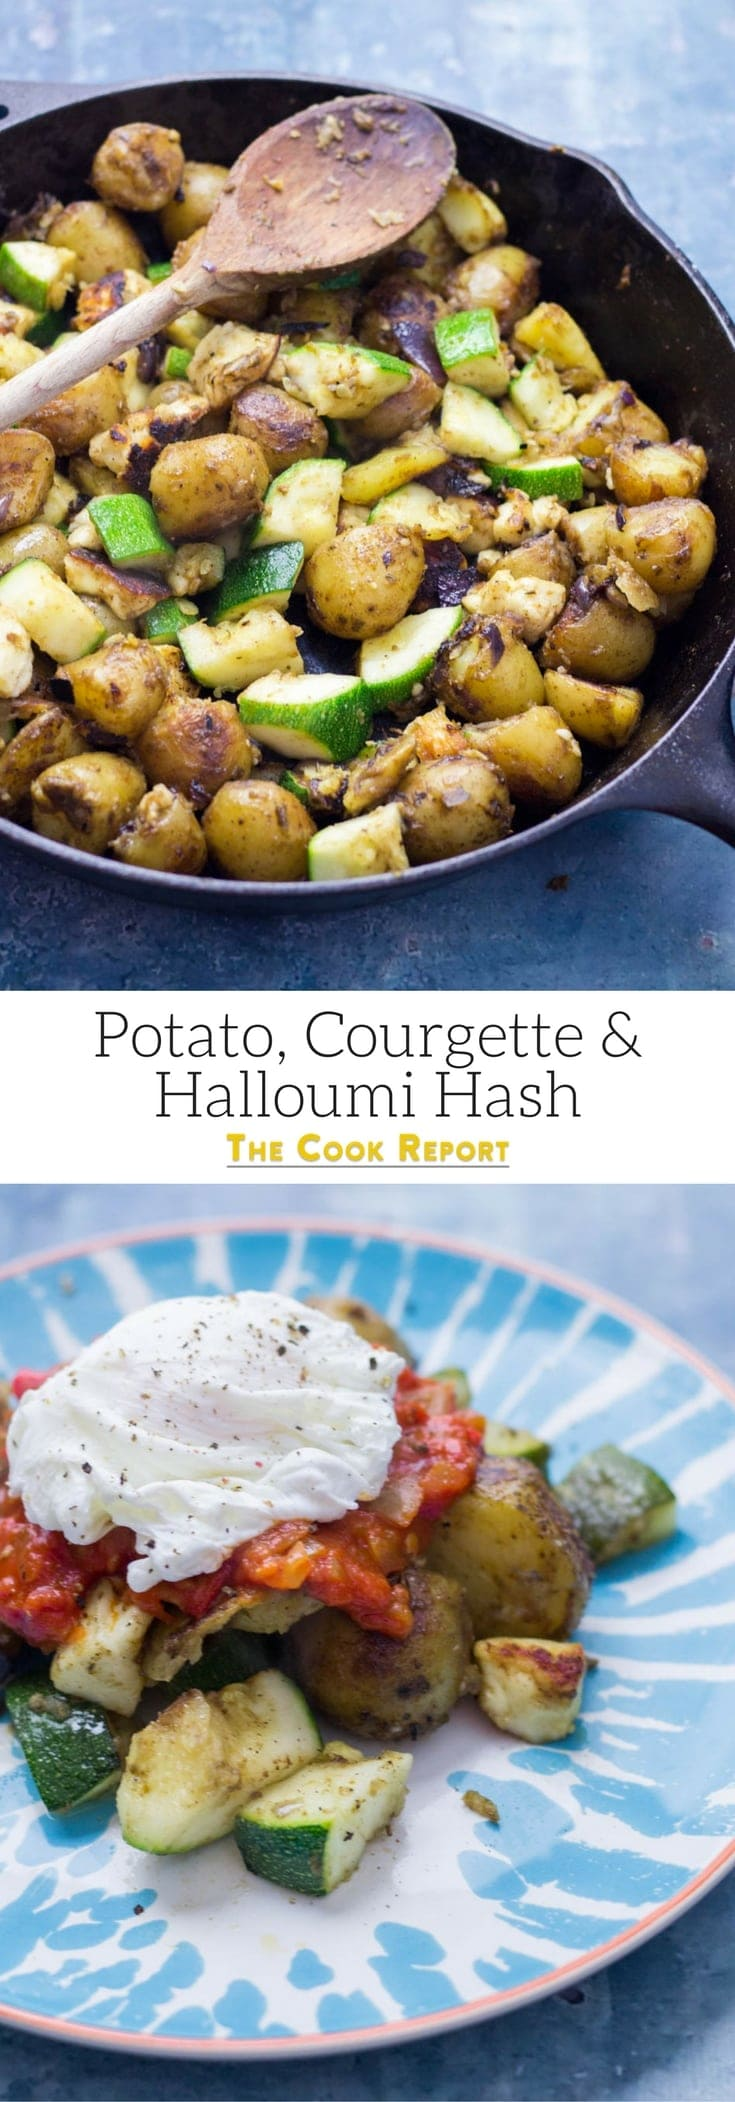 I love this potato, courgette & halloumi hash for breakfast, lunch or dinner! Topped with an easy tomato sauce & a poached egg it's a guaranteed winner.